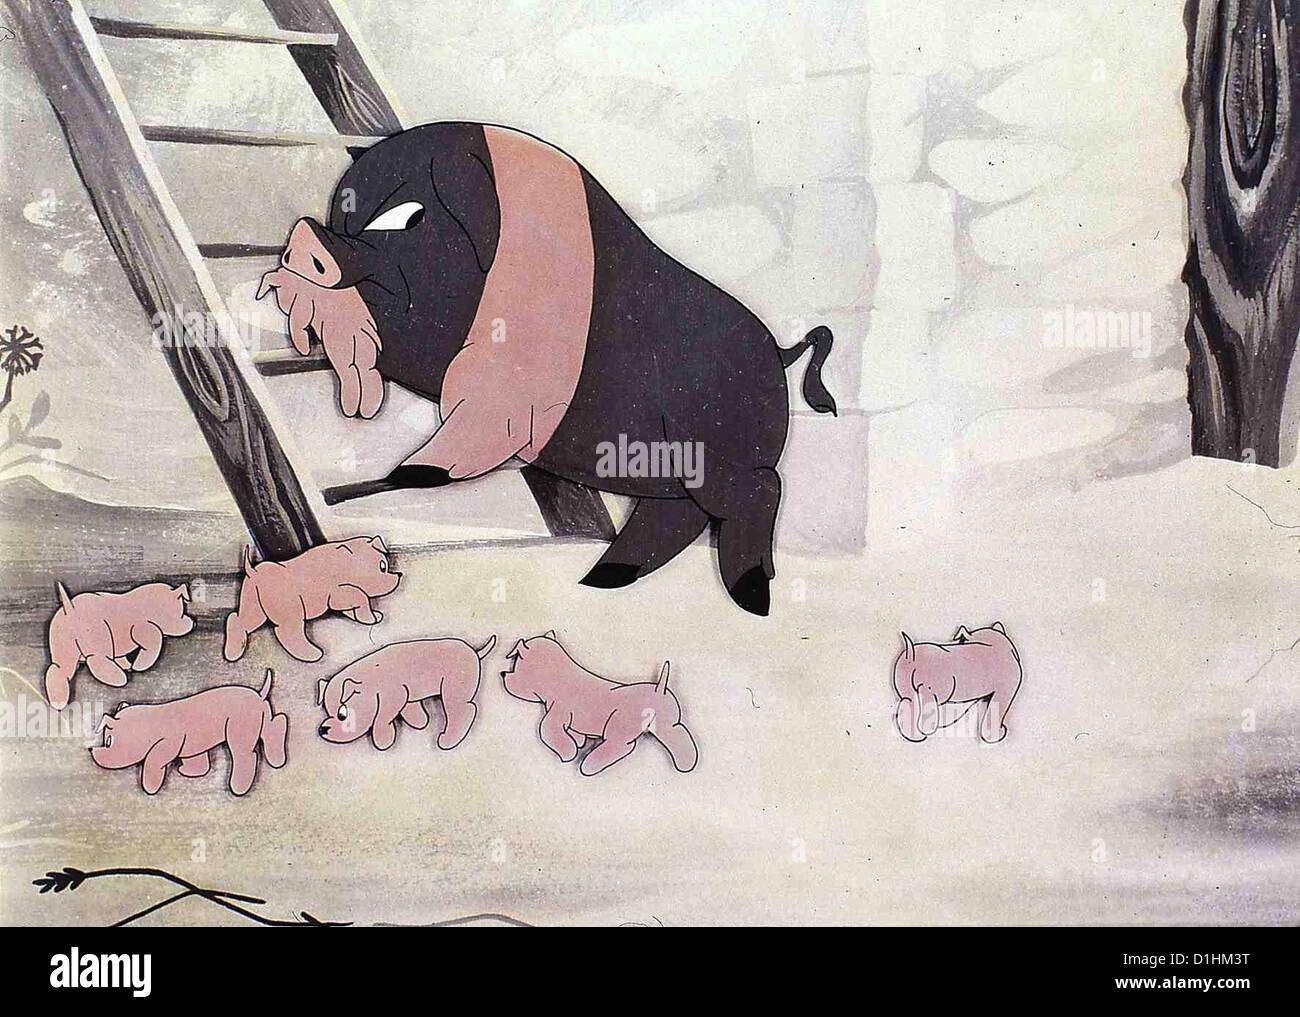 Animal Farm Film Stock Photos & Animal Farm Film Stock